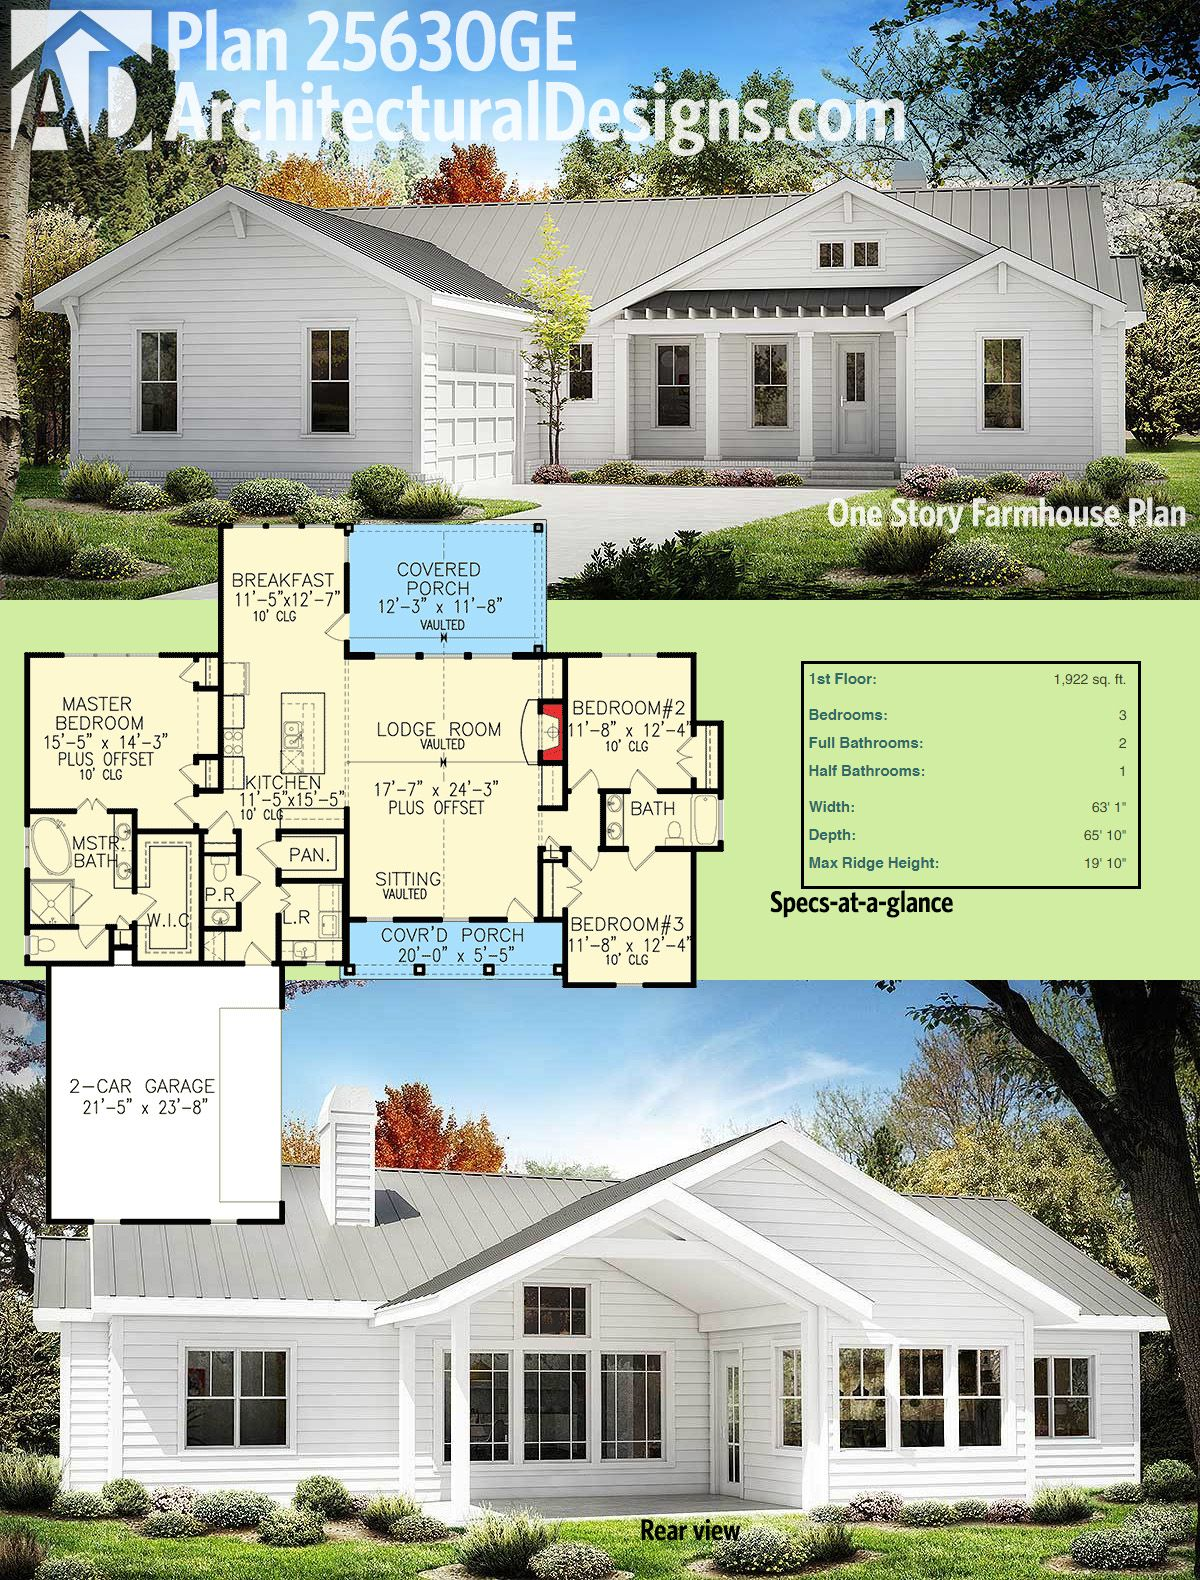 Plan 25630ge one story farmhouse plan farmhouse plans for New farmhouse plans